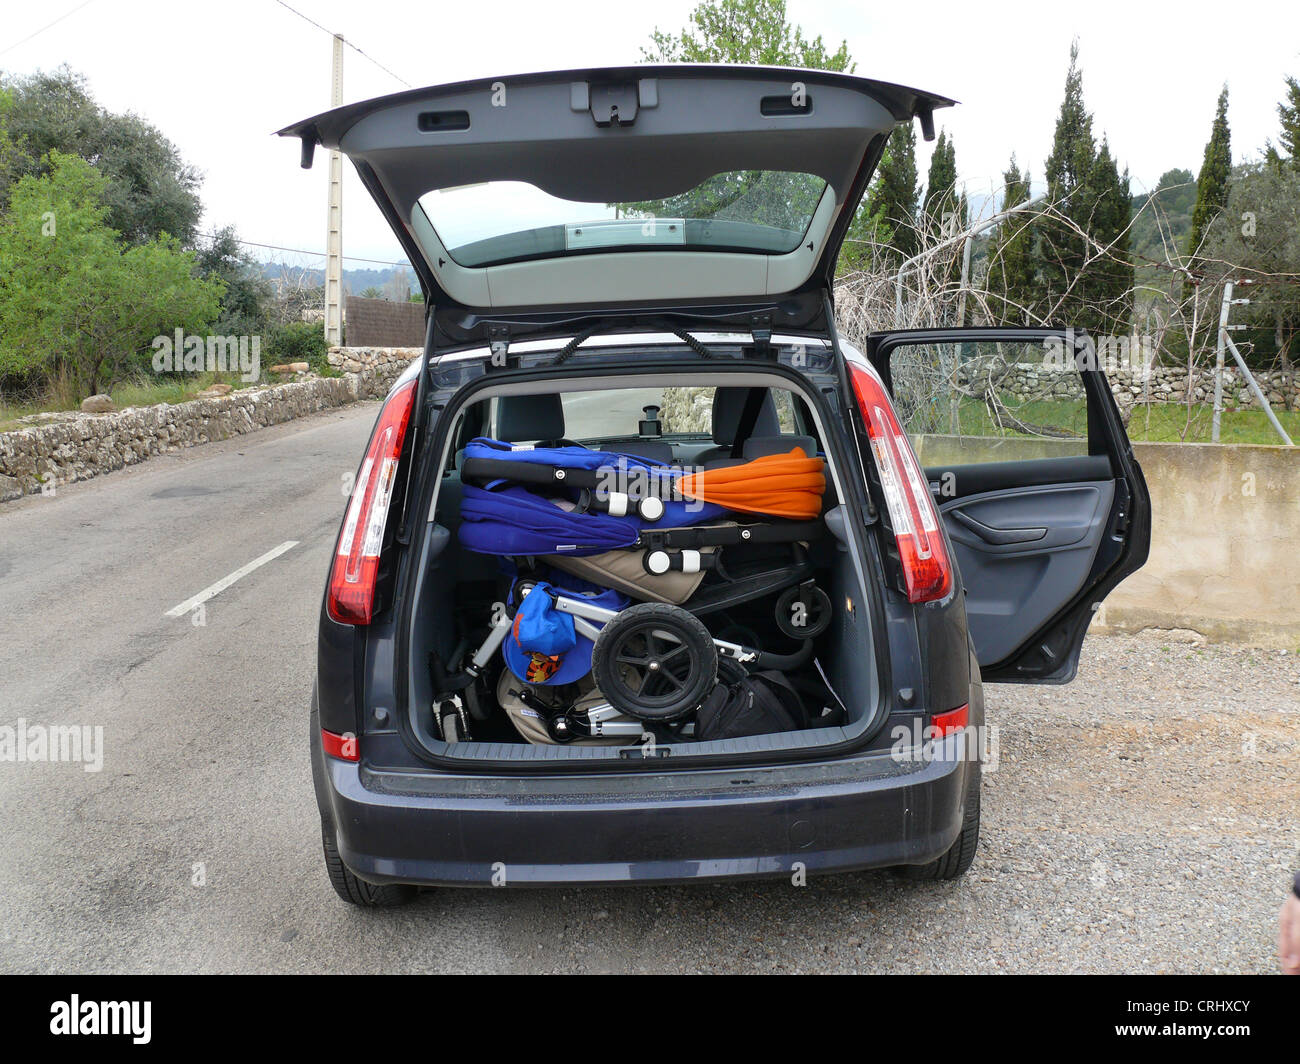 Stroller parking stock photos stroller parking stock images alamy parking hire car with open door and boot lid and two prams inside spain buycottarizona